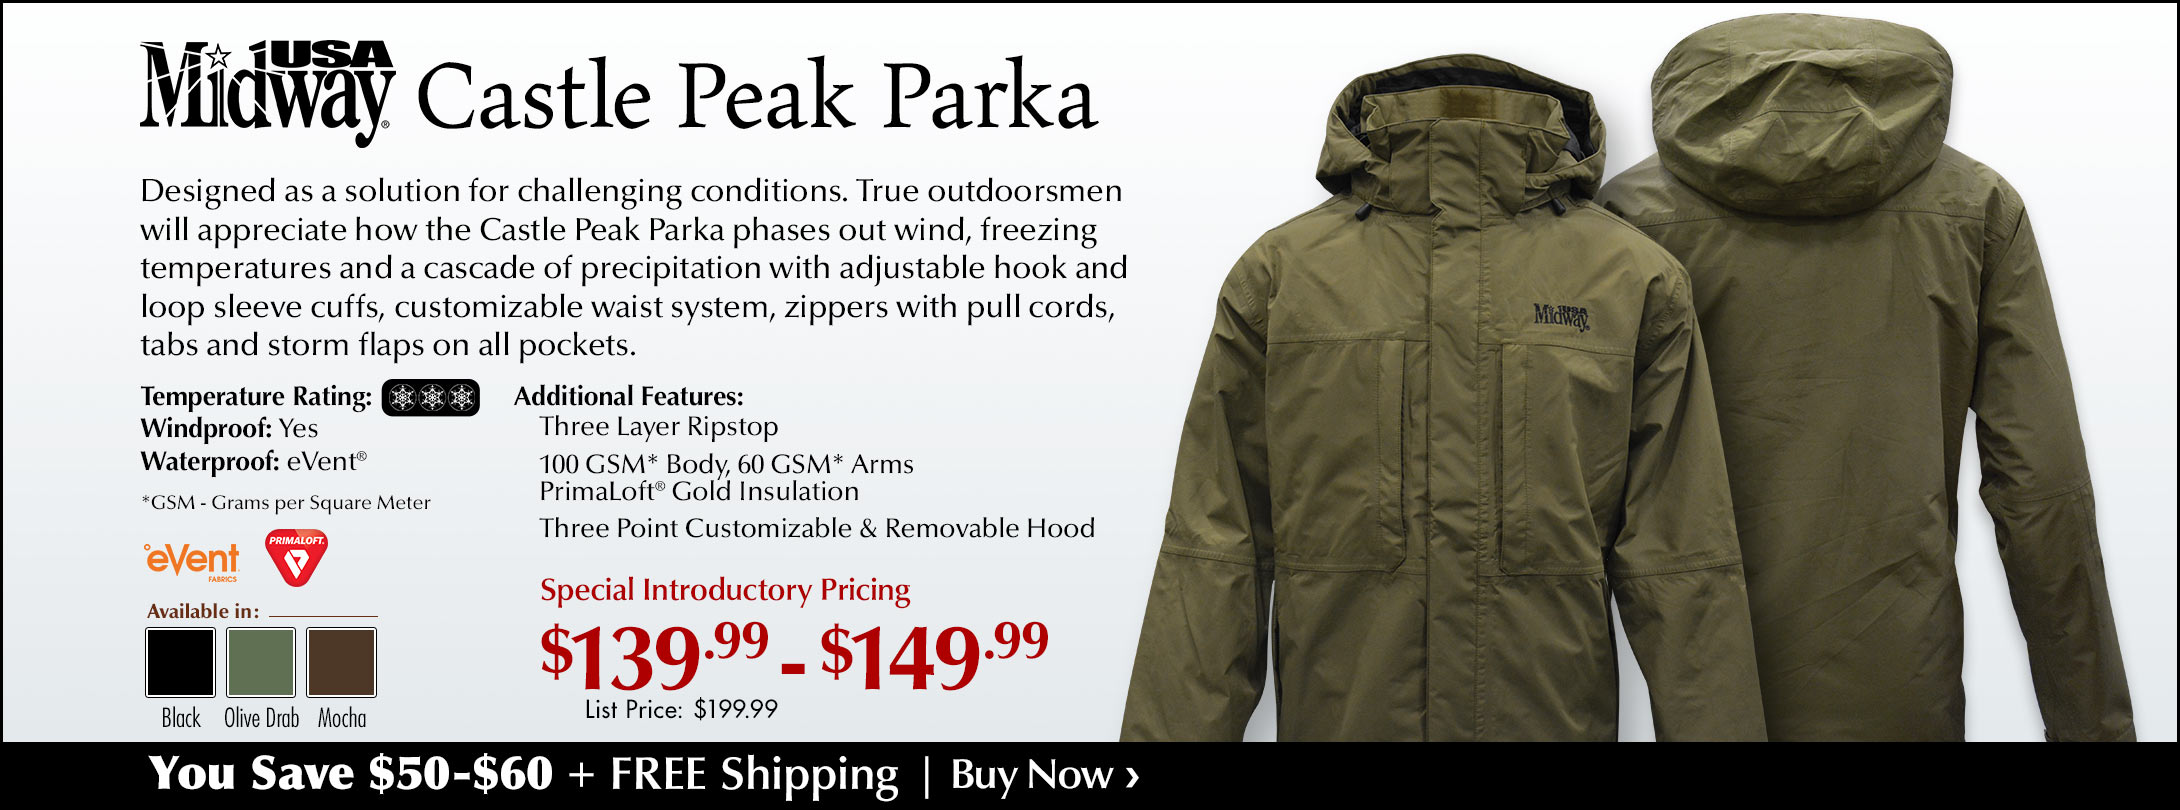 Special Introductory Pricing on MidwayUSA Castle Peak Parka + Free Shipping